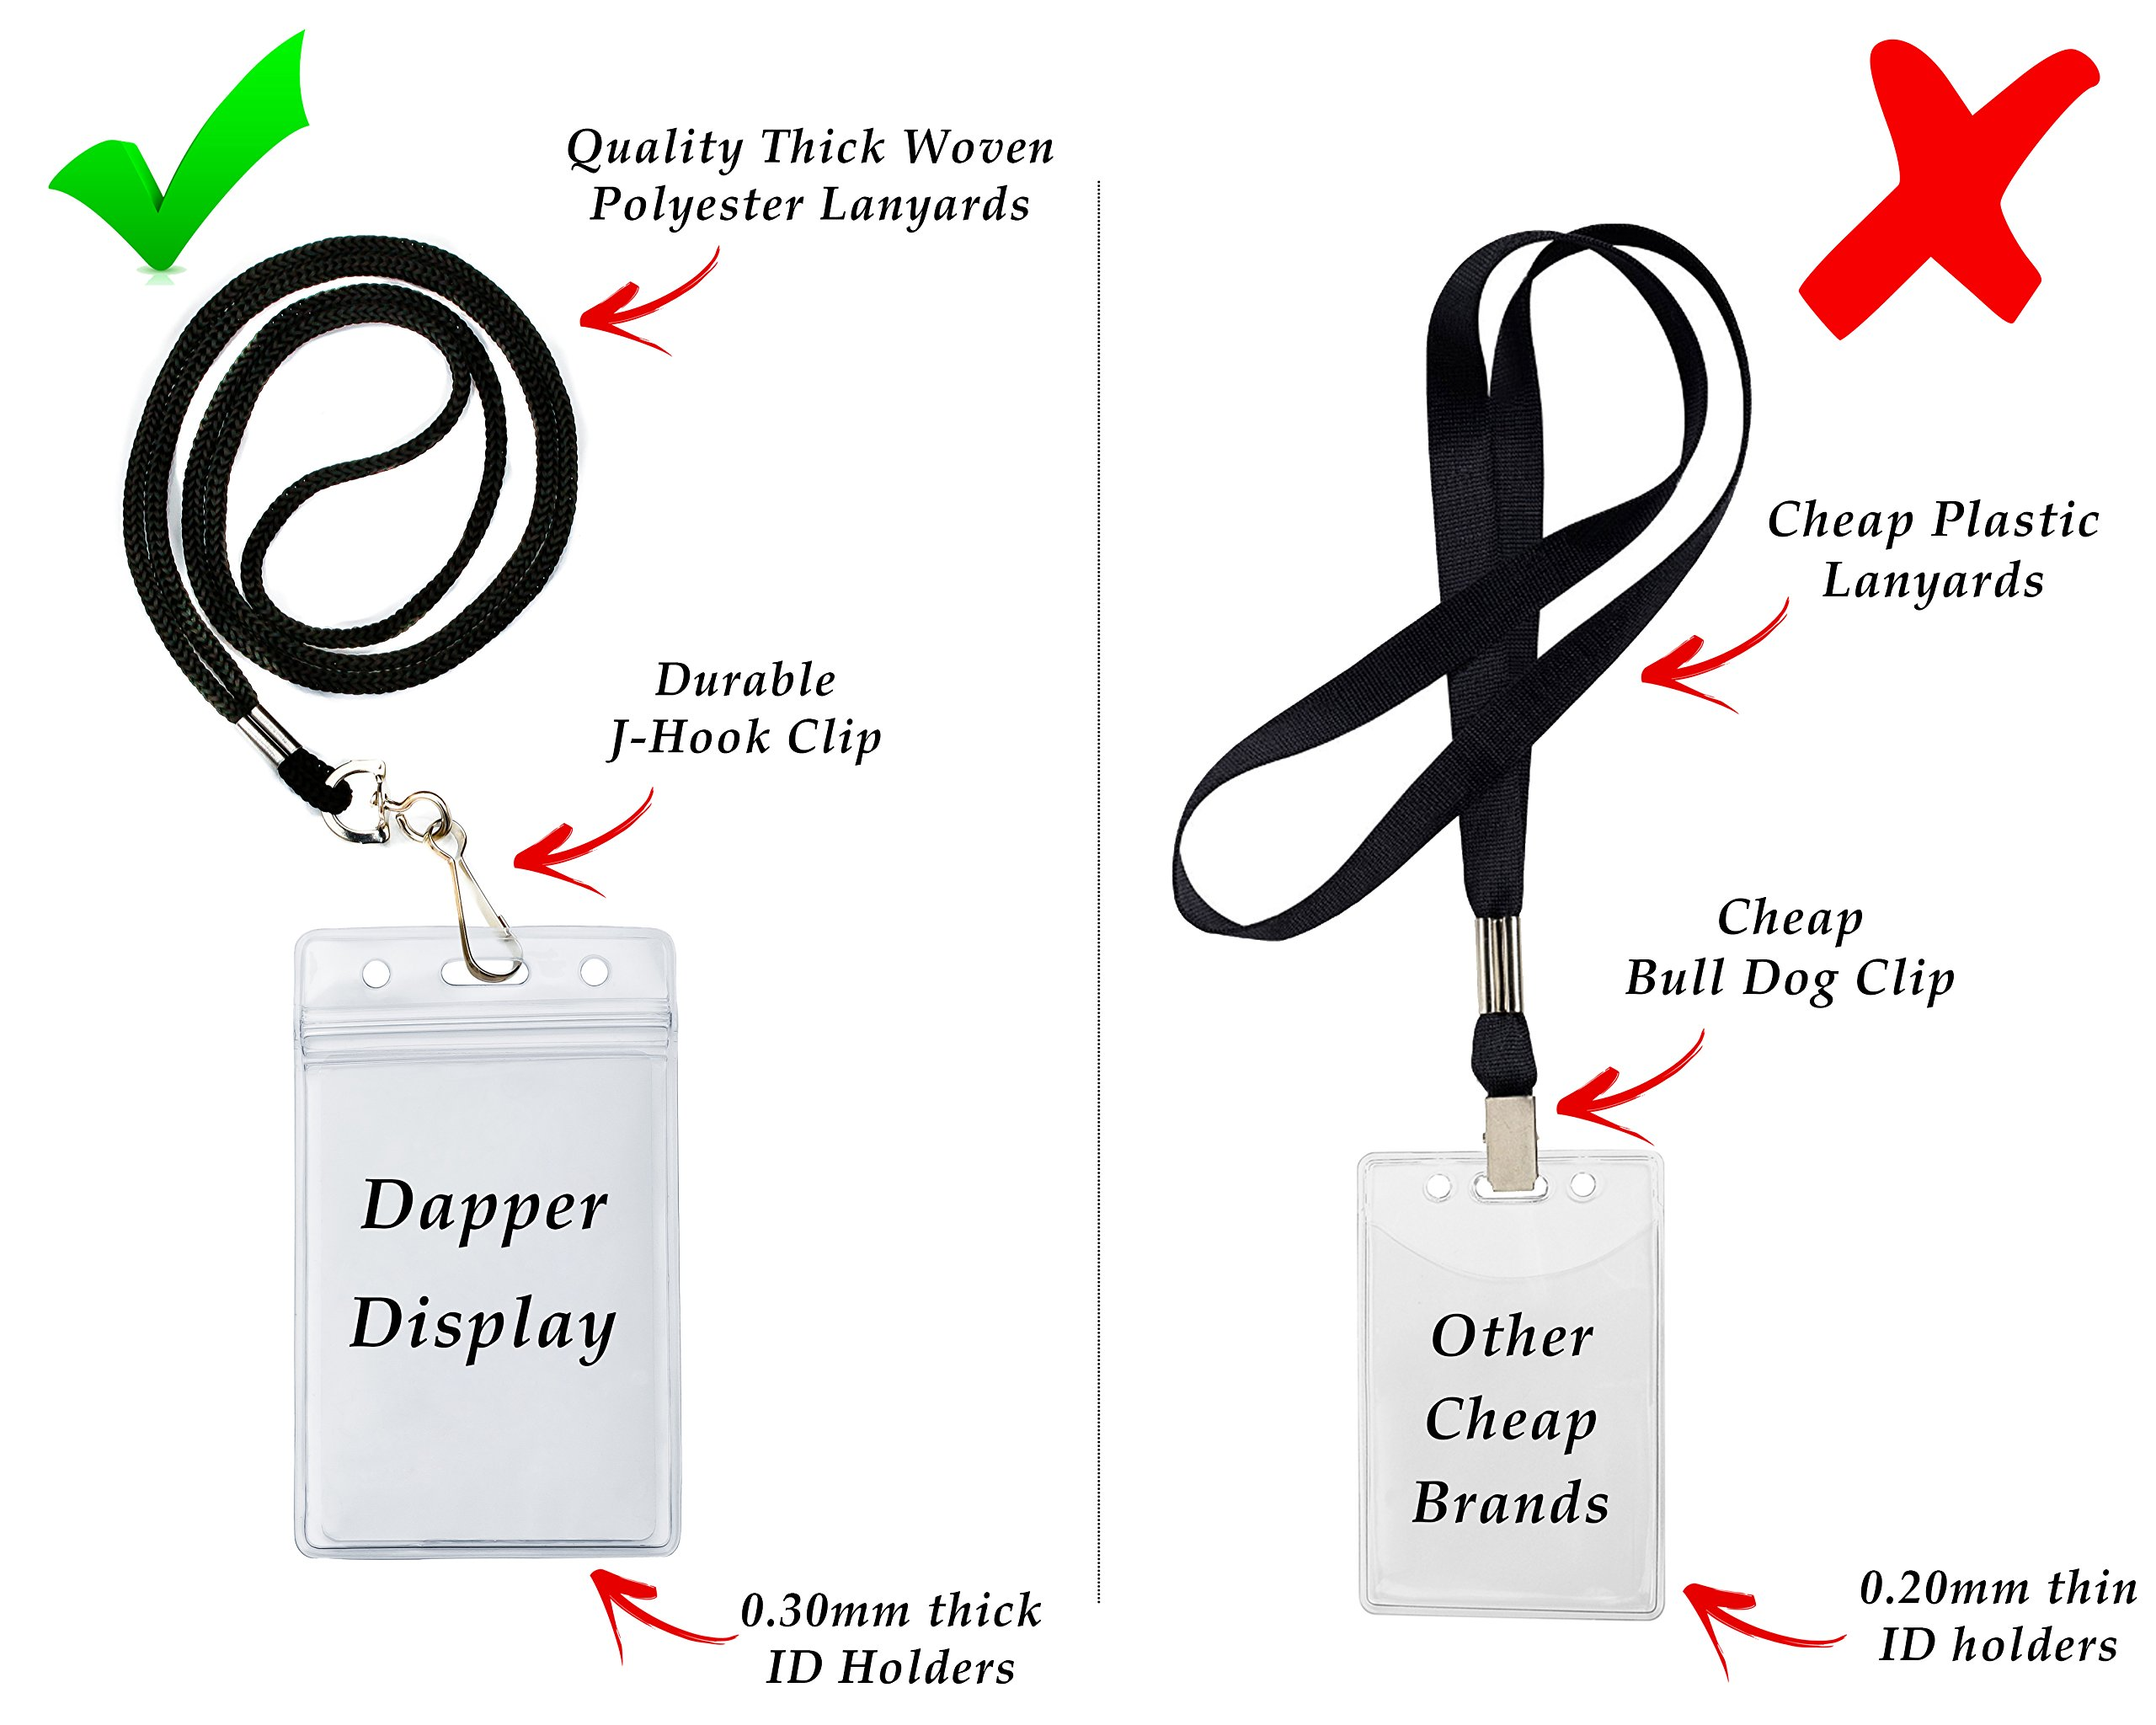 ID Badge Holders & Lanyards, 55 sets, Black Lanyard and VERTICAL Name Tags Hole Punched Zipper Waterproof Resealable Clear Plastic, BONUS Insert Labels Credit Card Holder For Employees Heavy Duty by Dapper Display (Image #2)